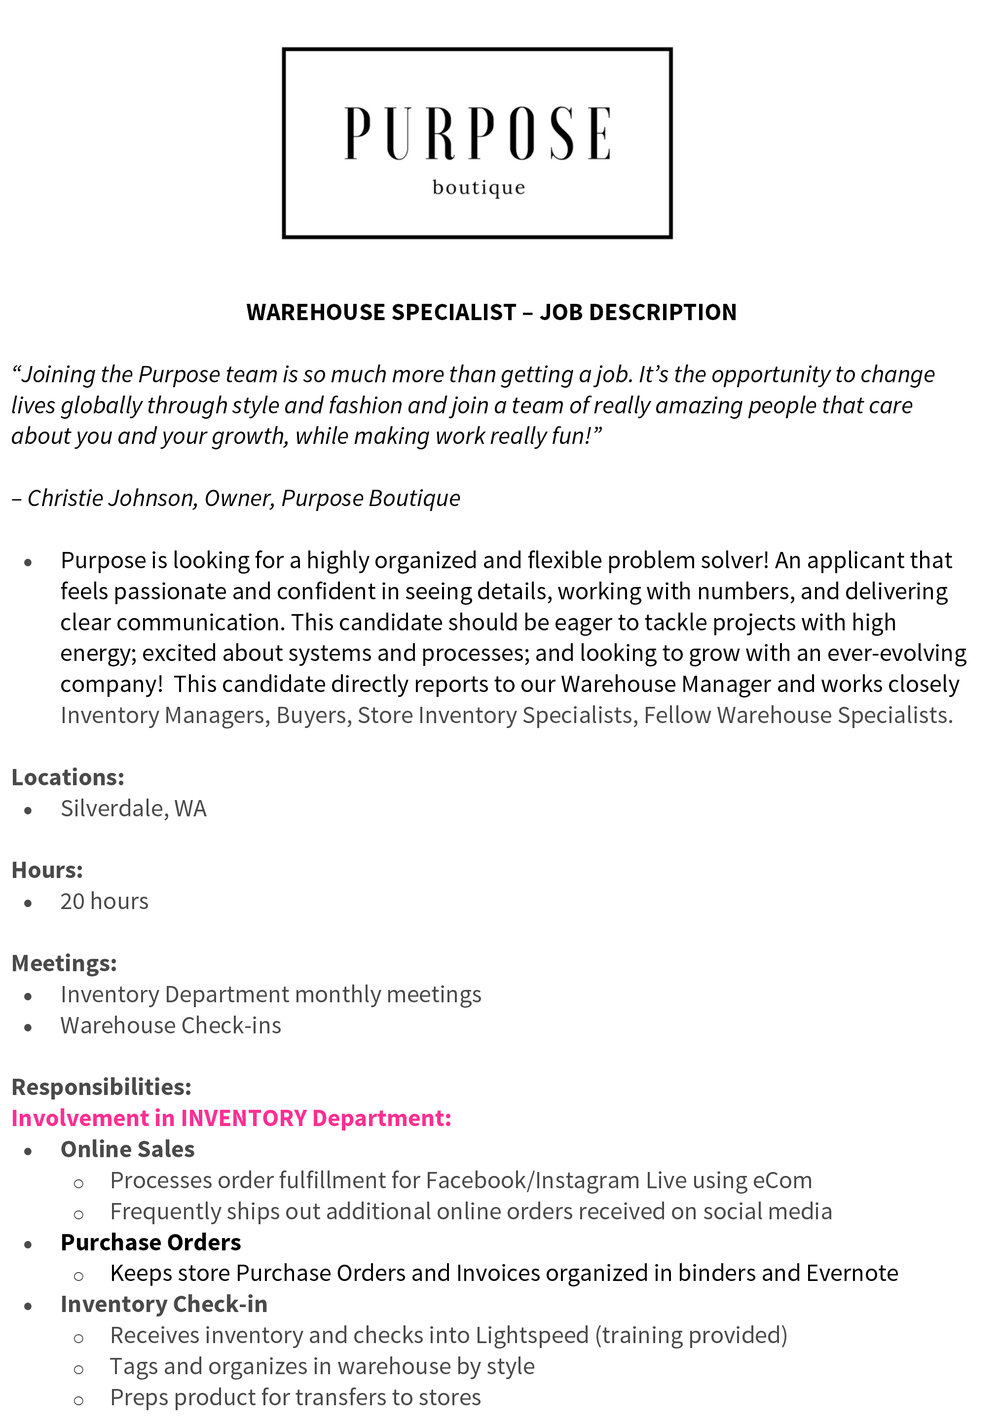 Warehouse Specialist - Job Description-1.jpg